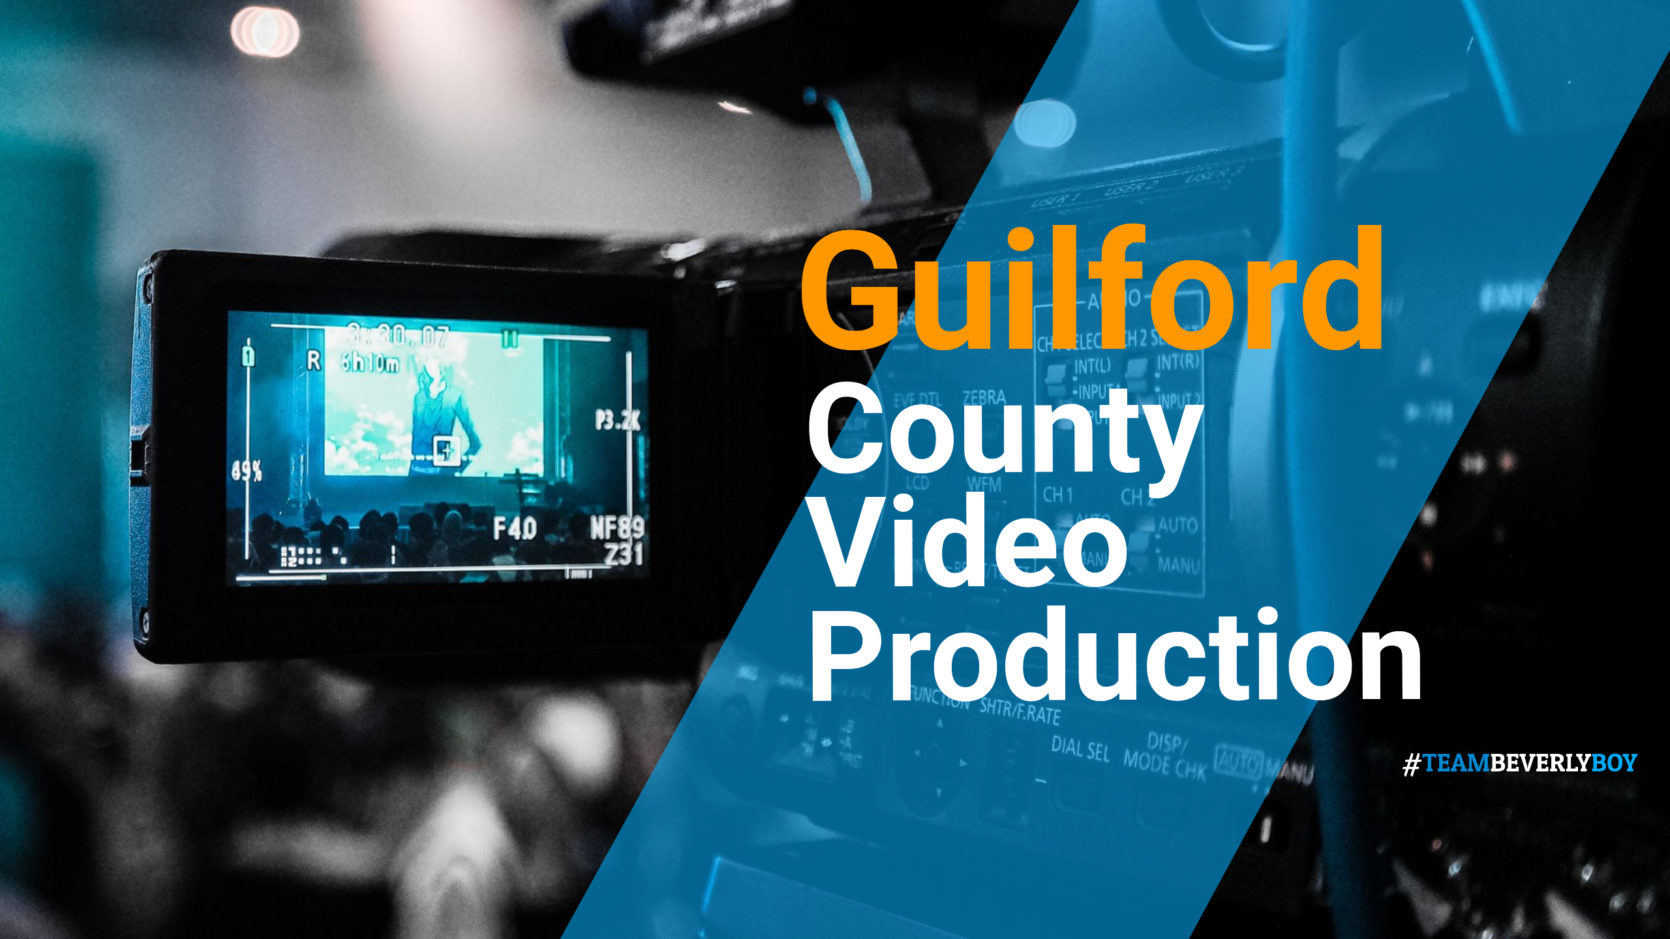 Guilford County Video Production